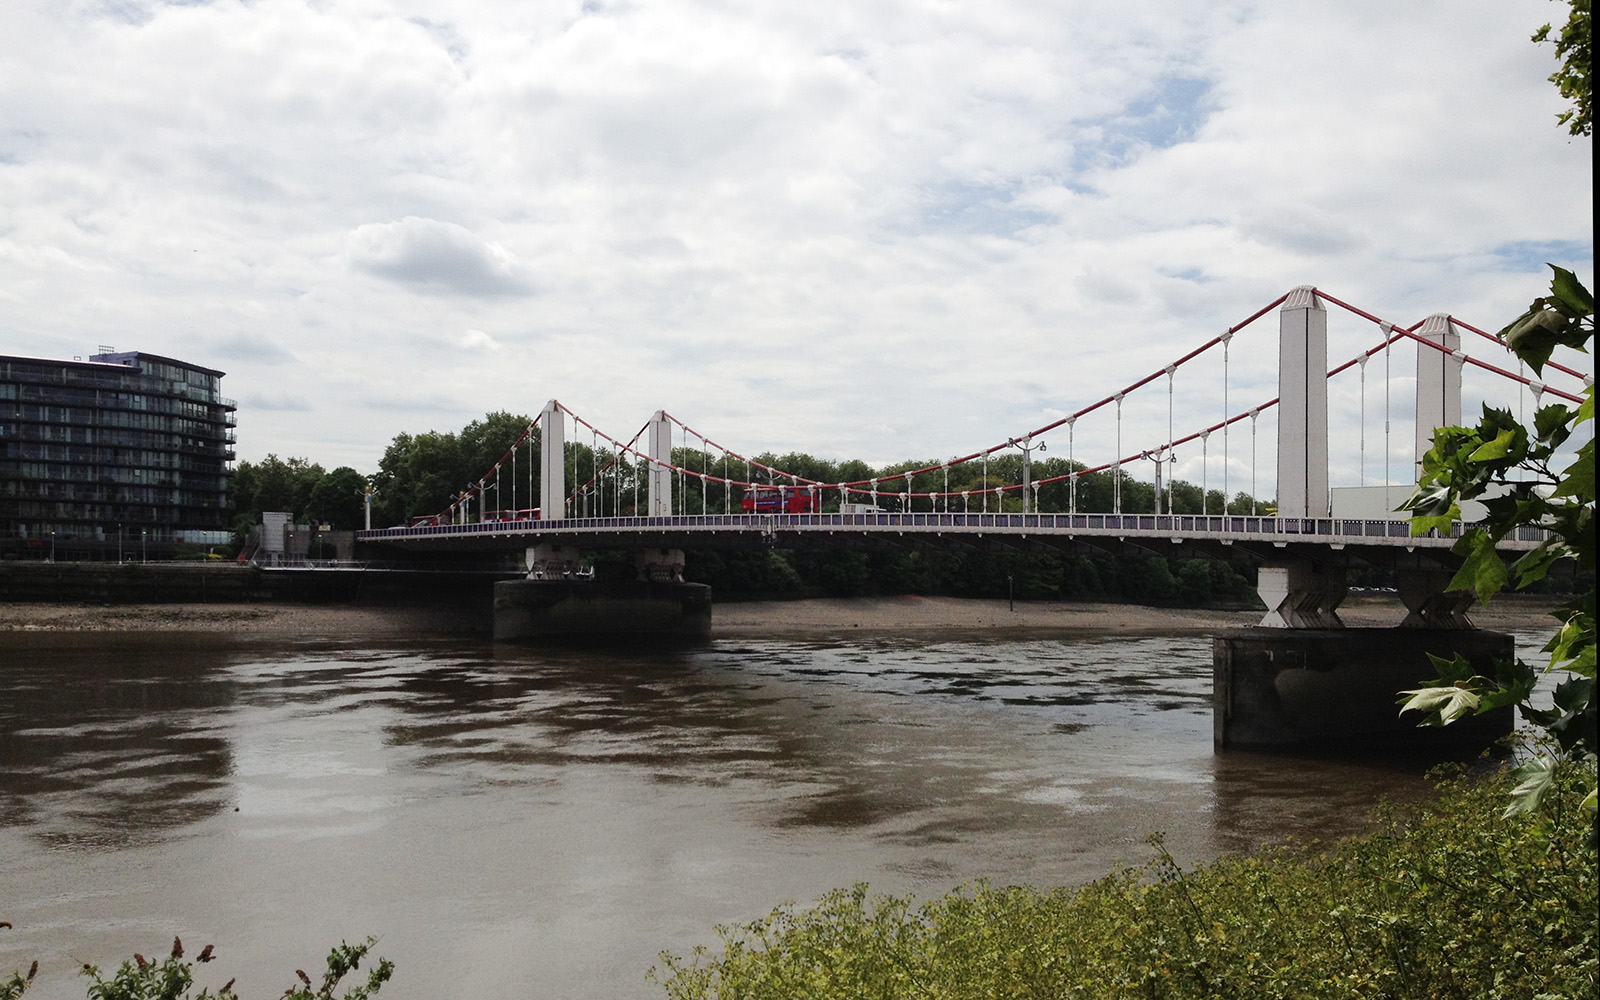 Chelsea Bridge, 25 May 2015